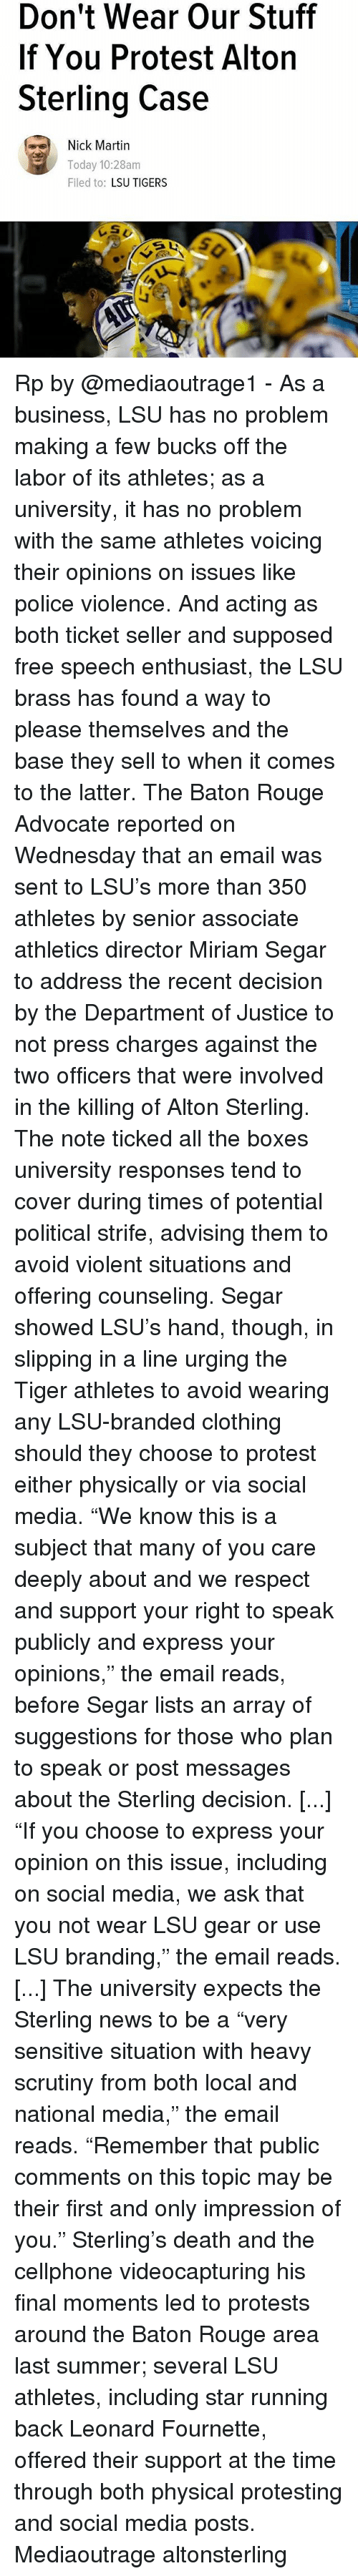 "lsu tigers: Don't Wear Our Stuff  If You Protest Alton  Sterling Case  Nick Martin  Today 10:28am  Filed to  LSU TIGERS Rp by @mediaoutrage1 - As a business, LSU has no problem making a few bucks off the labor of its athletes; as a university, it has no problem with the same athletes voicing their opinions on issues like police violence. And acting as both ticket seller and supposed free speech enthusiast, the LSU brass has found a way to please themselves and the base they sell to when it comes to the latter. The Baton Rouge Advocate reported on Wednesday that an email was sent to LSU's more than 350 athletes by senior associate athletics director Miriam Segar to address the recent decision by the Department of Justice to not press charges against the two officers that were involved in the killing of Alton Sterling. The note ticked all the boxes university responses tend to cover during times of potential political strife, advising them to avoid violent situations and offering counseling. Segar showed LSU's hand, though, in slipping in a line urging the Tiger athletes to avoid wearing any LSU-branded clothing should they choose to protest either physically or via social media. ""We know this is a subject that many of you care deeply about and we respect and support your right to speak publicly and express your opinions,"" the email reads, before Segar lists an array of suggestions for those who plan to speak or post messages about the Sterling decision. [...] ""If you choose to express your opinion on this issue, including on social media, we ask that you not wear LSU gear or use LSU branding,"" the email reads. [...] The university expects the Sterling news to be a ""very sensitive situation with heavy scrutiny from both local and national media,"" the email reads. ""Remember that public comments on this topic may be their first and only impression of you."" Sterling's death and the cellphone videocapturing his final moments led to protests around the Baton Rouge area last summer; several LSU athletes, including star running back Leonard Fournette, offered their support at the time through both physical protesting and social media posts. Mediaoutrage altonsterling"